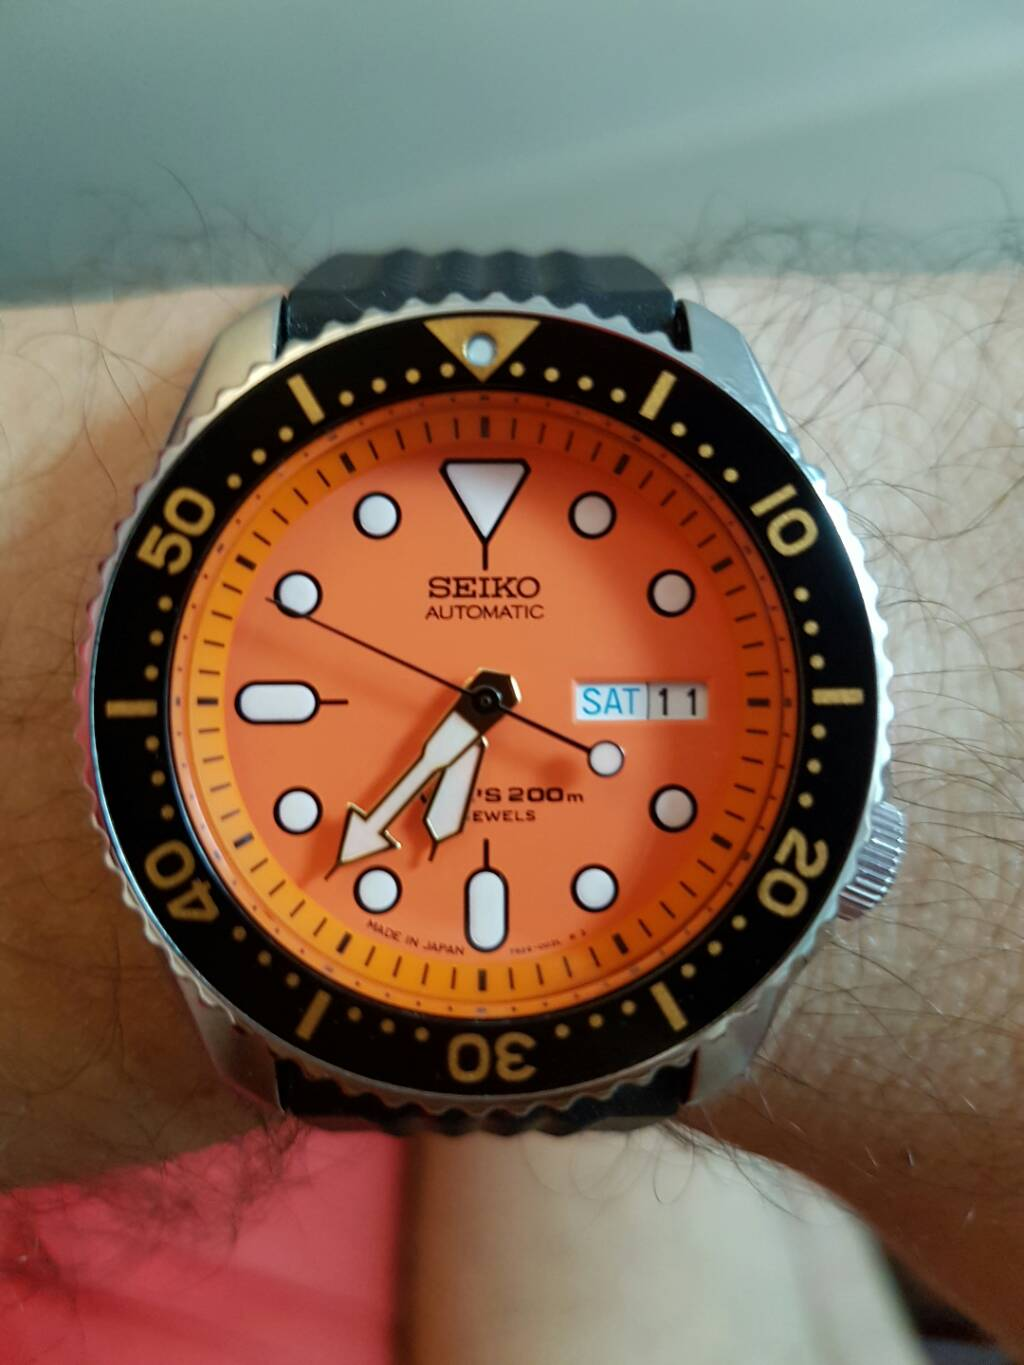 luck watches been me is to seiko a divers prices regulated very consistent anyone skx from delivery with great showthread good forums everyone creation purchase running rolex by and have place has fast